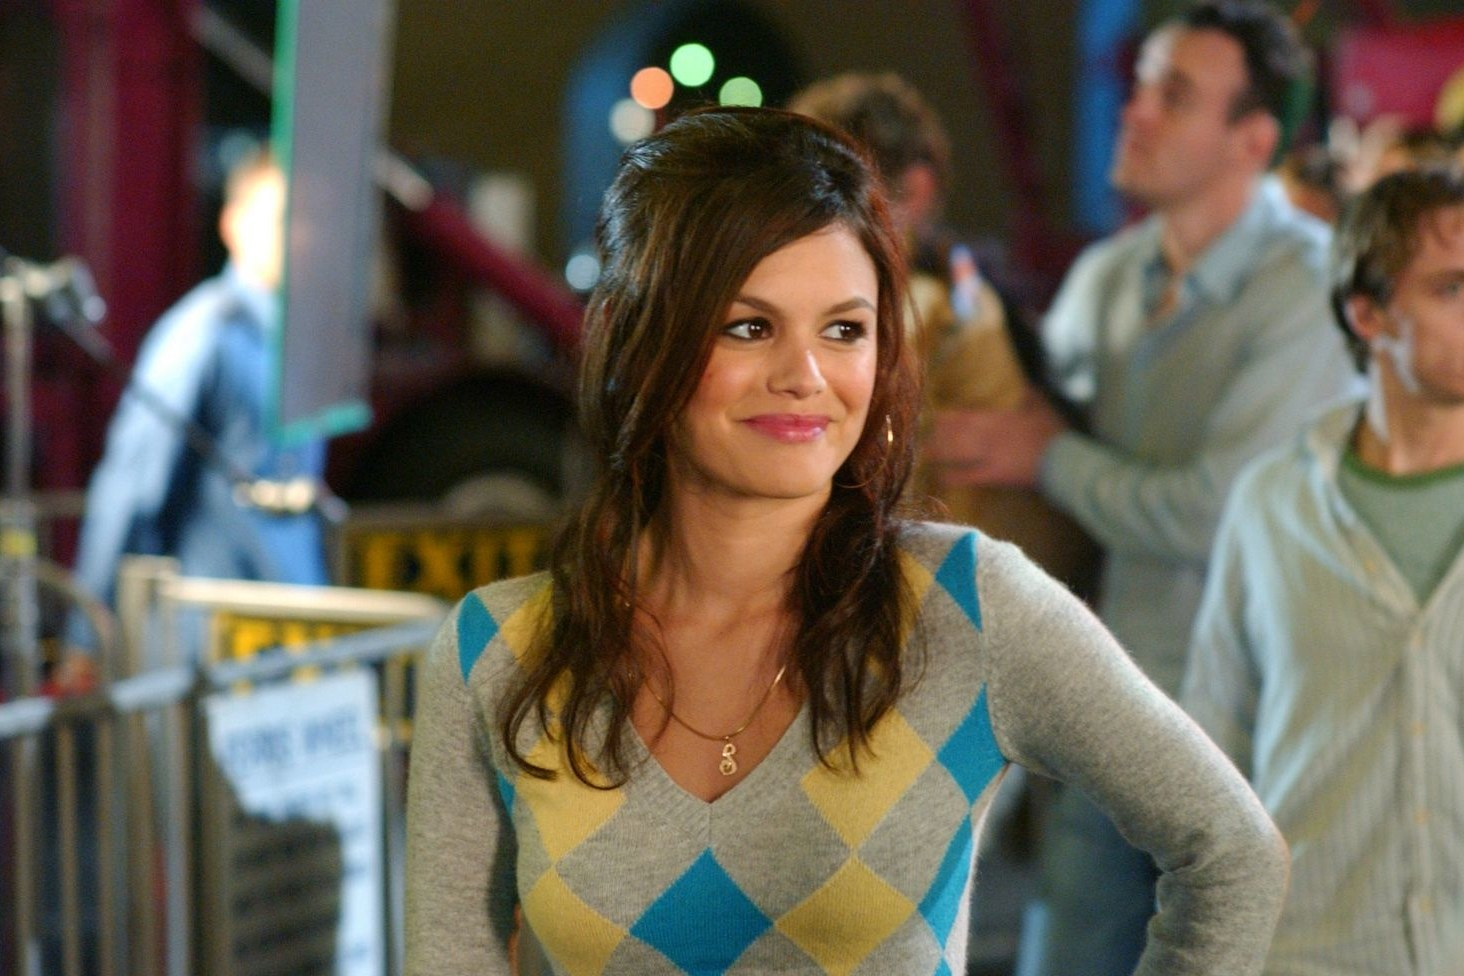 Rachel Bilson as Summer Roberts in 'The OC'